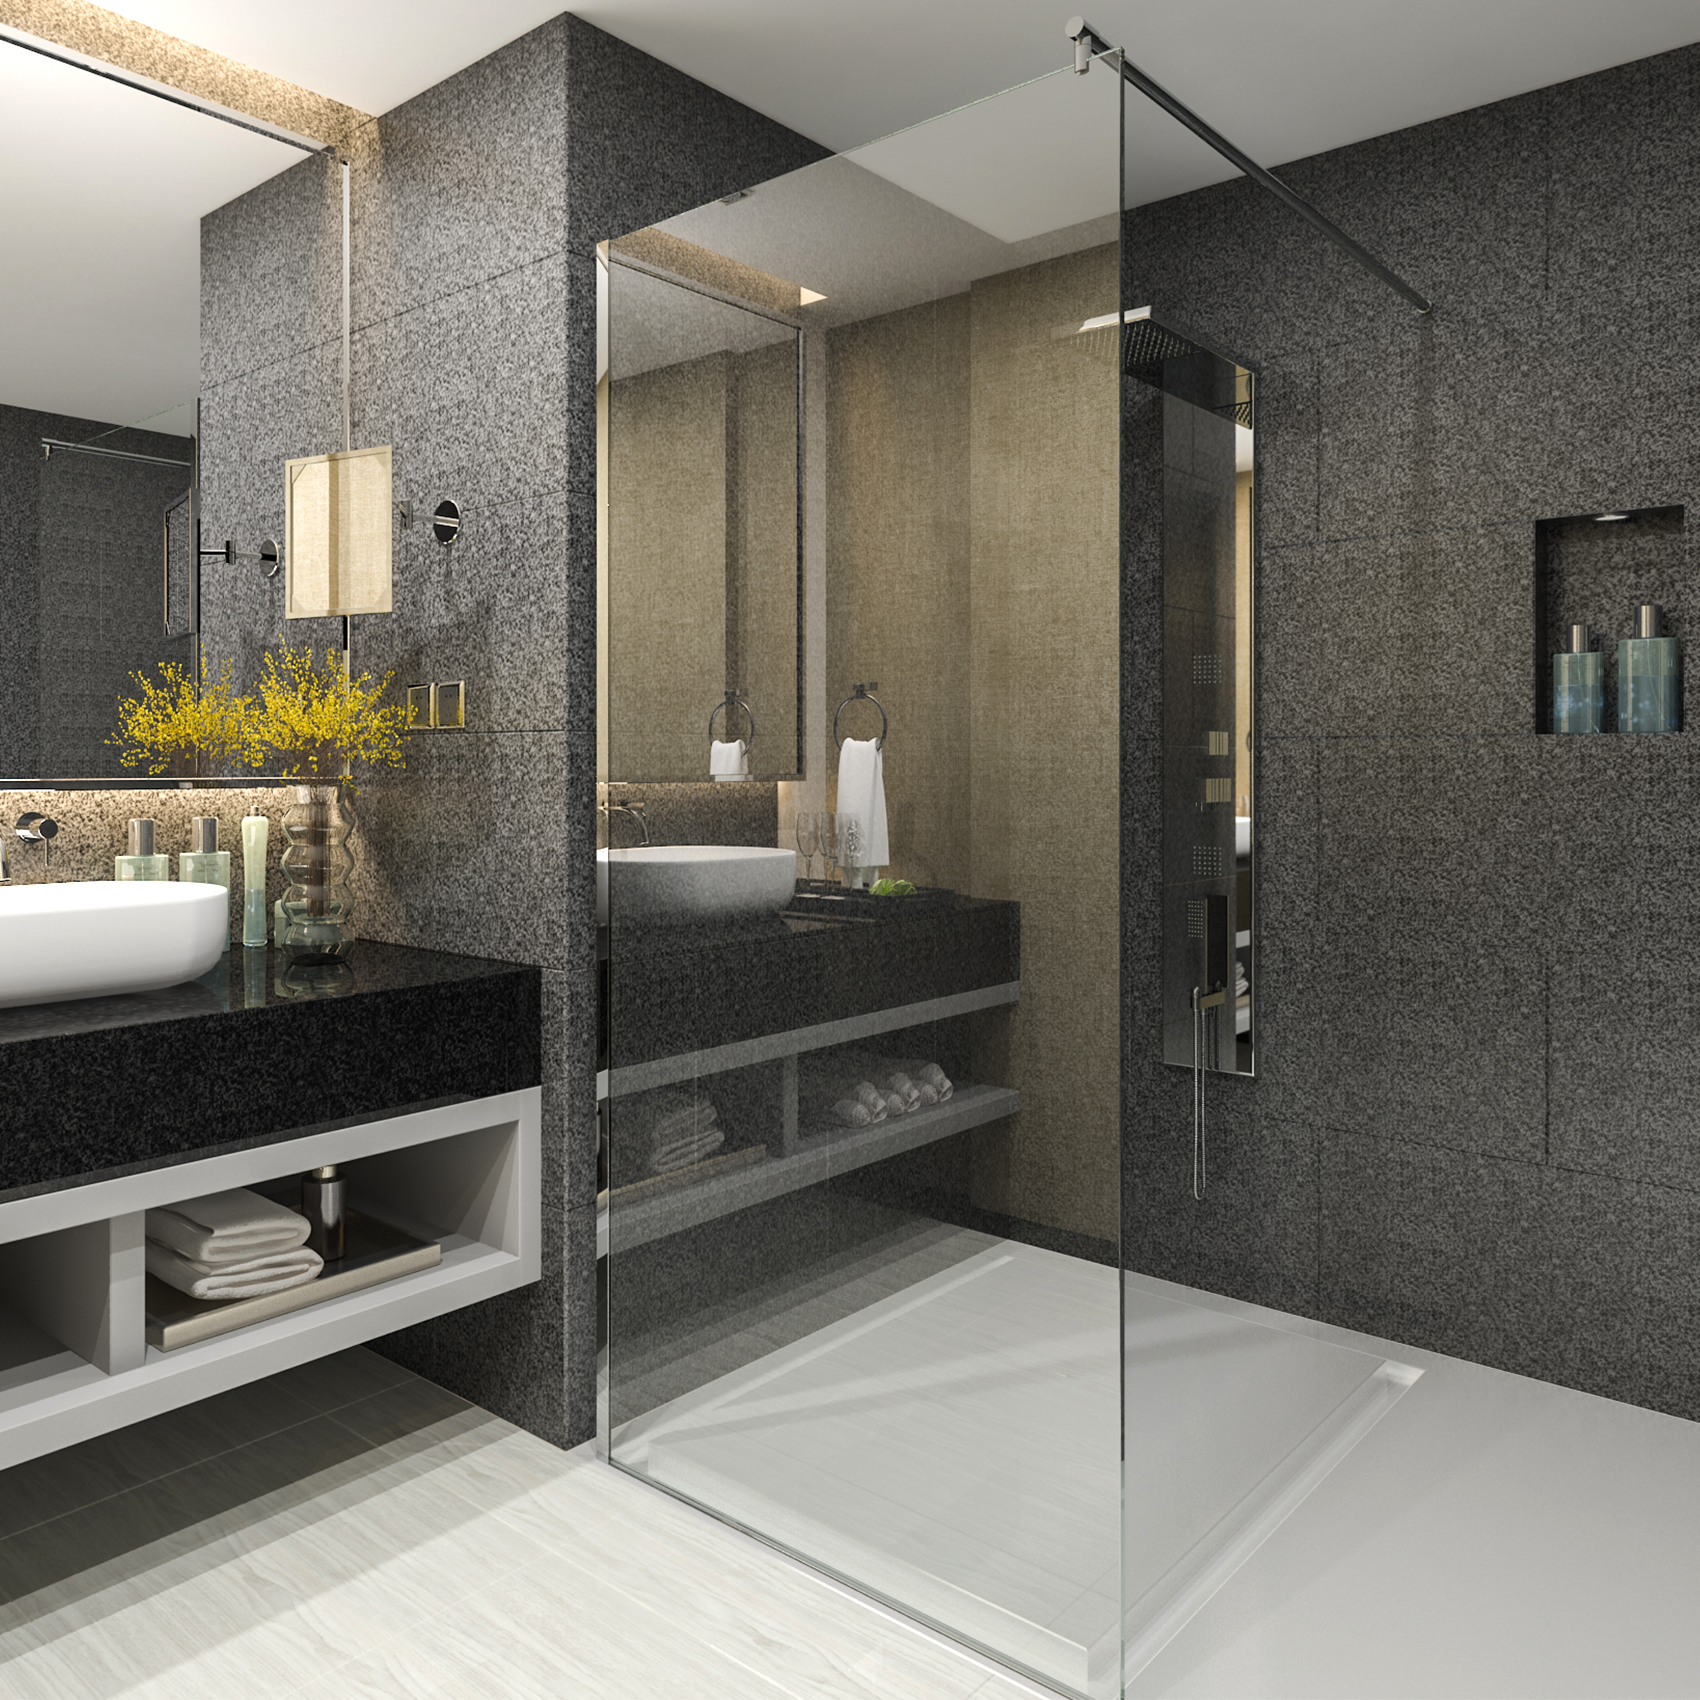 walk in paroi de douche 10mm esg verre cabine enceinte mur nano ebay. Black Bedroom Furniture Sets. Home Design Ideas